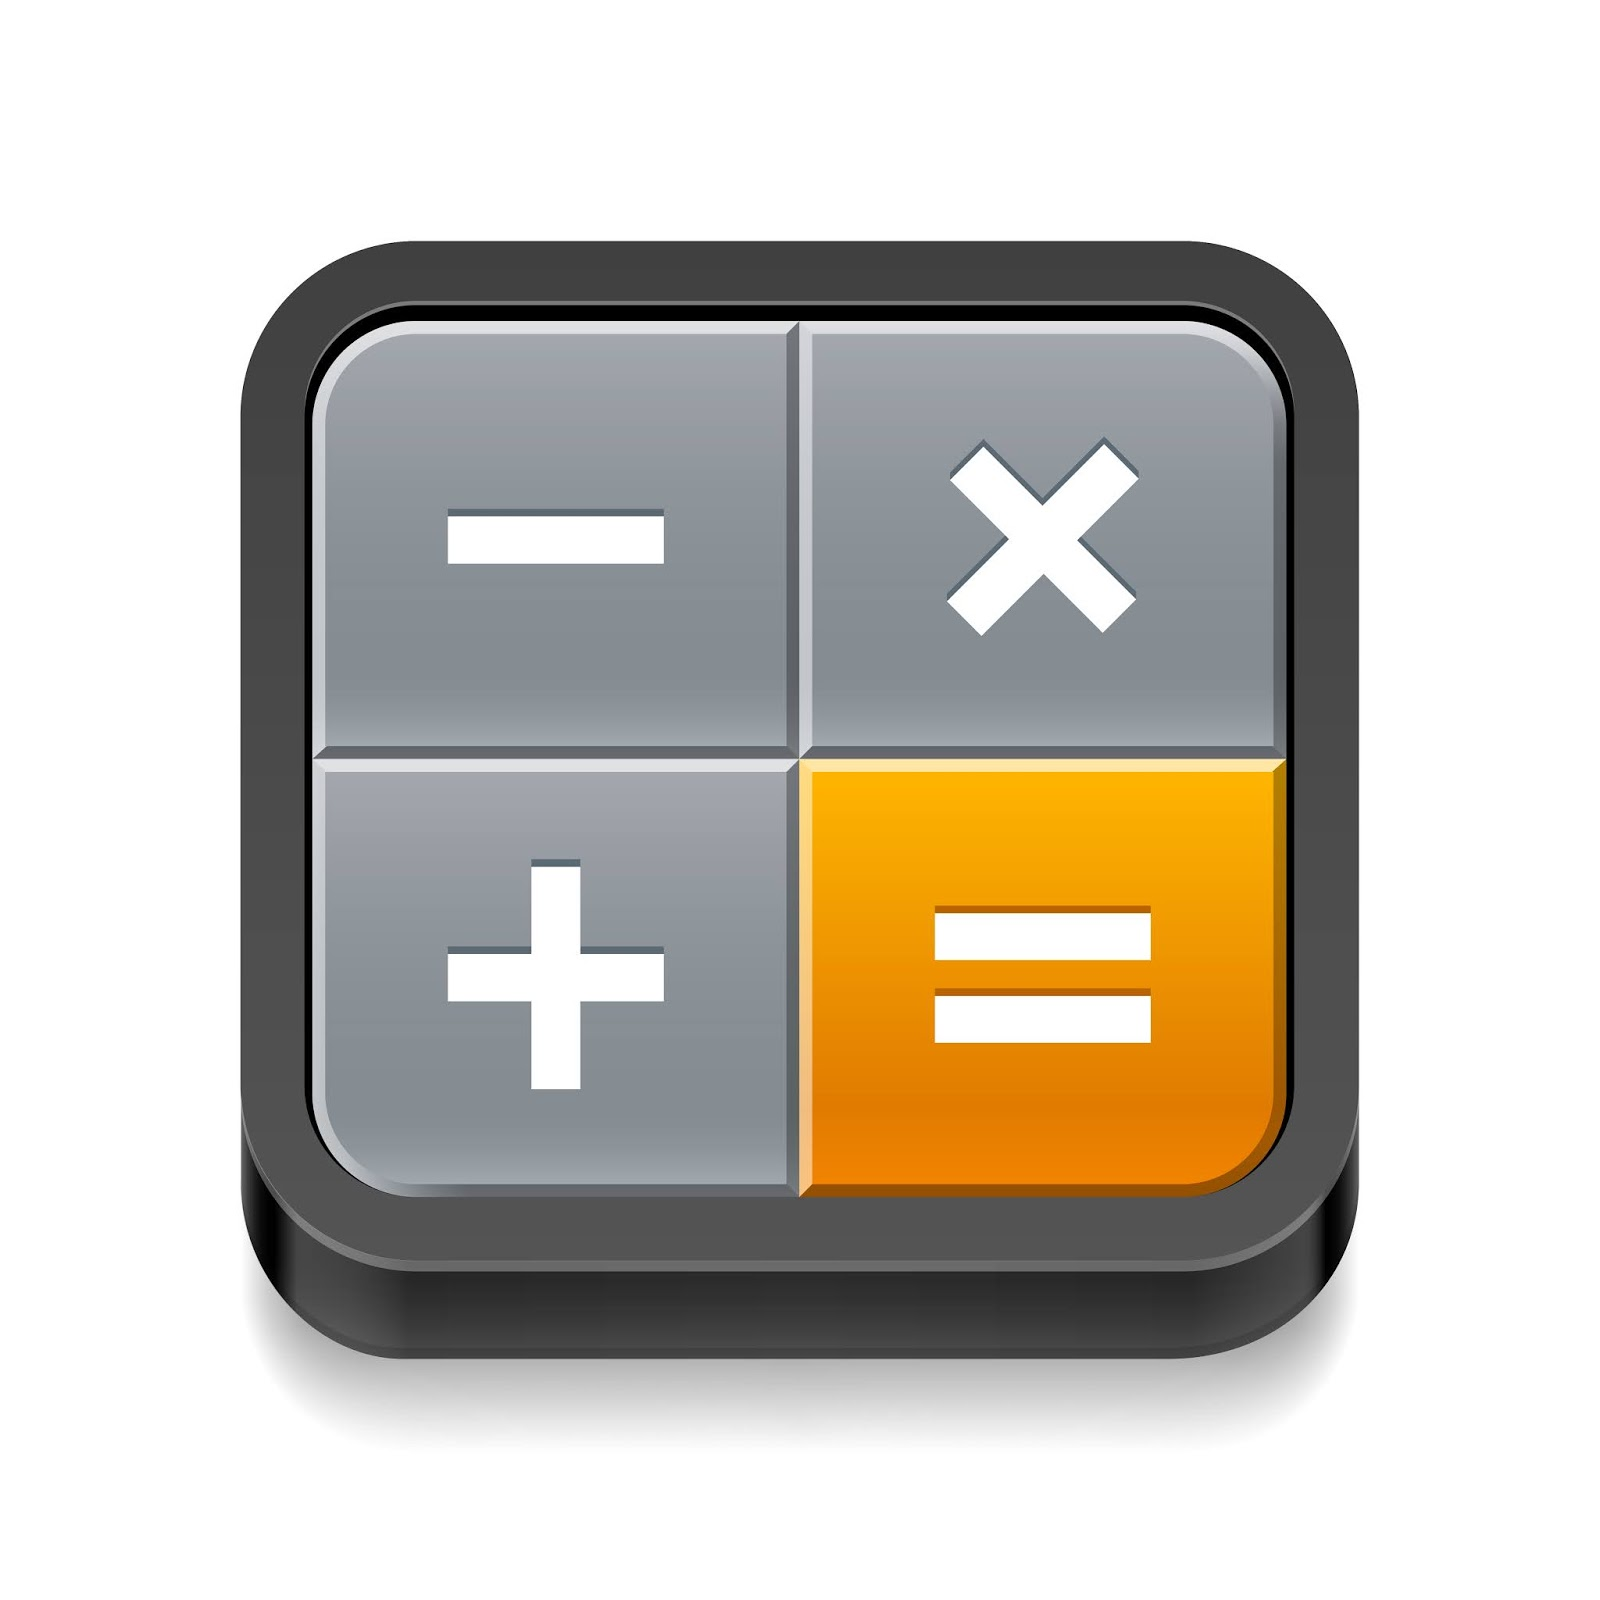 Calculator Icon Free Download Vector CDR, AI, EPS and PNG Formats